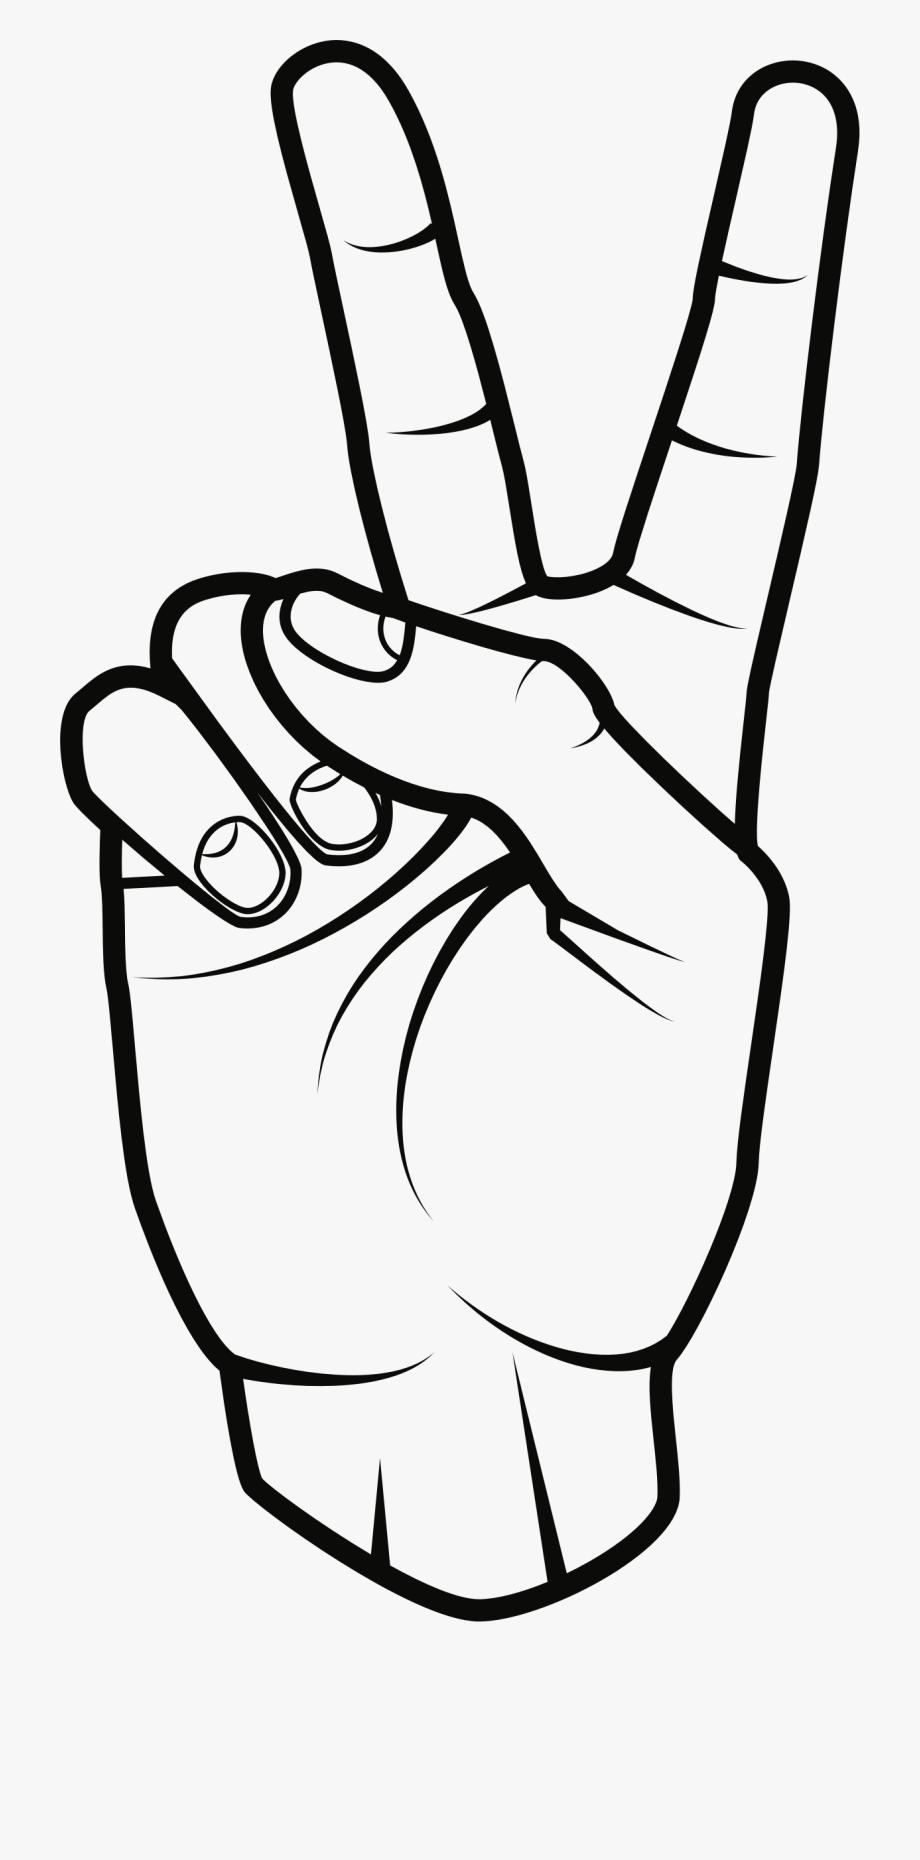 Peace clipart black and white clip freeuse Peace Sign Clipart Black And White - Clip Art Peace Sign ... clip freeuse